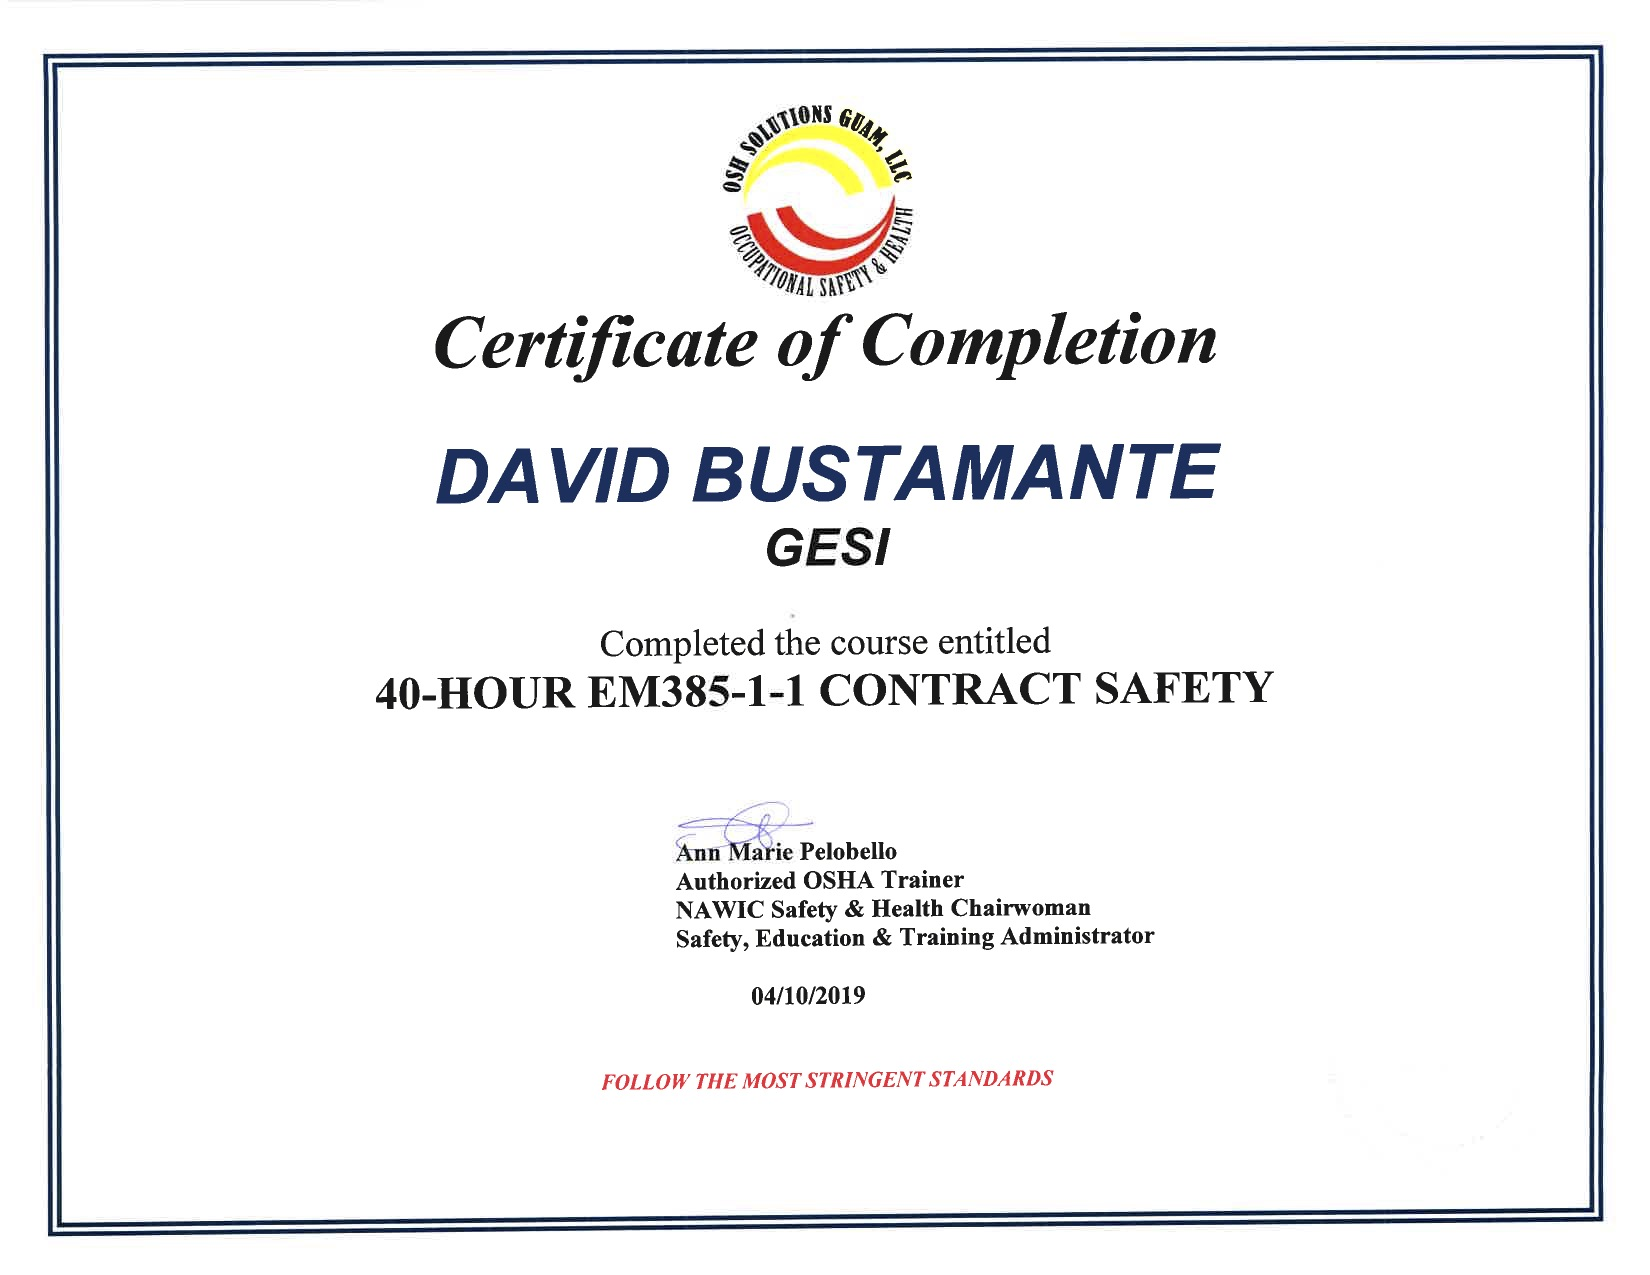 EM385 Certificates-David Bustamante